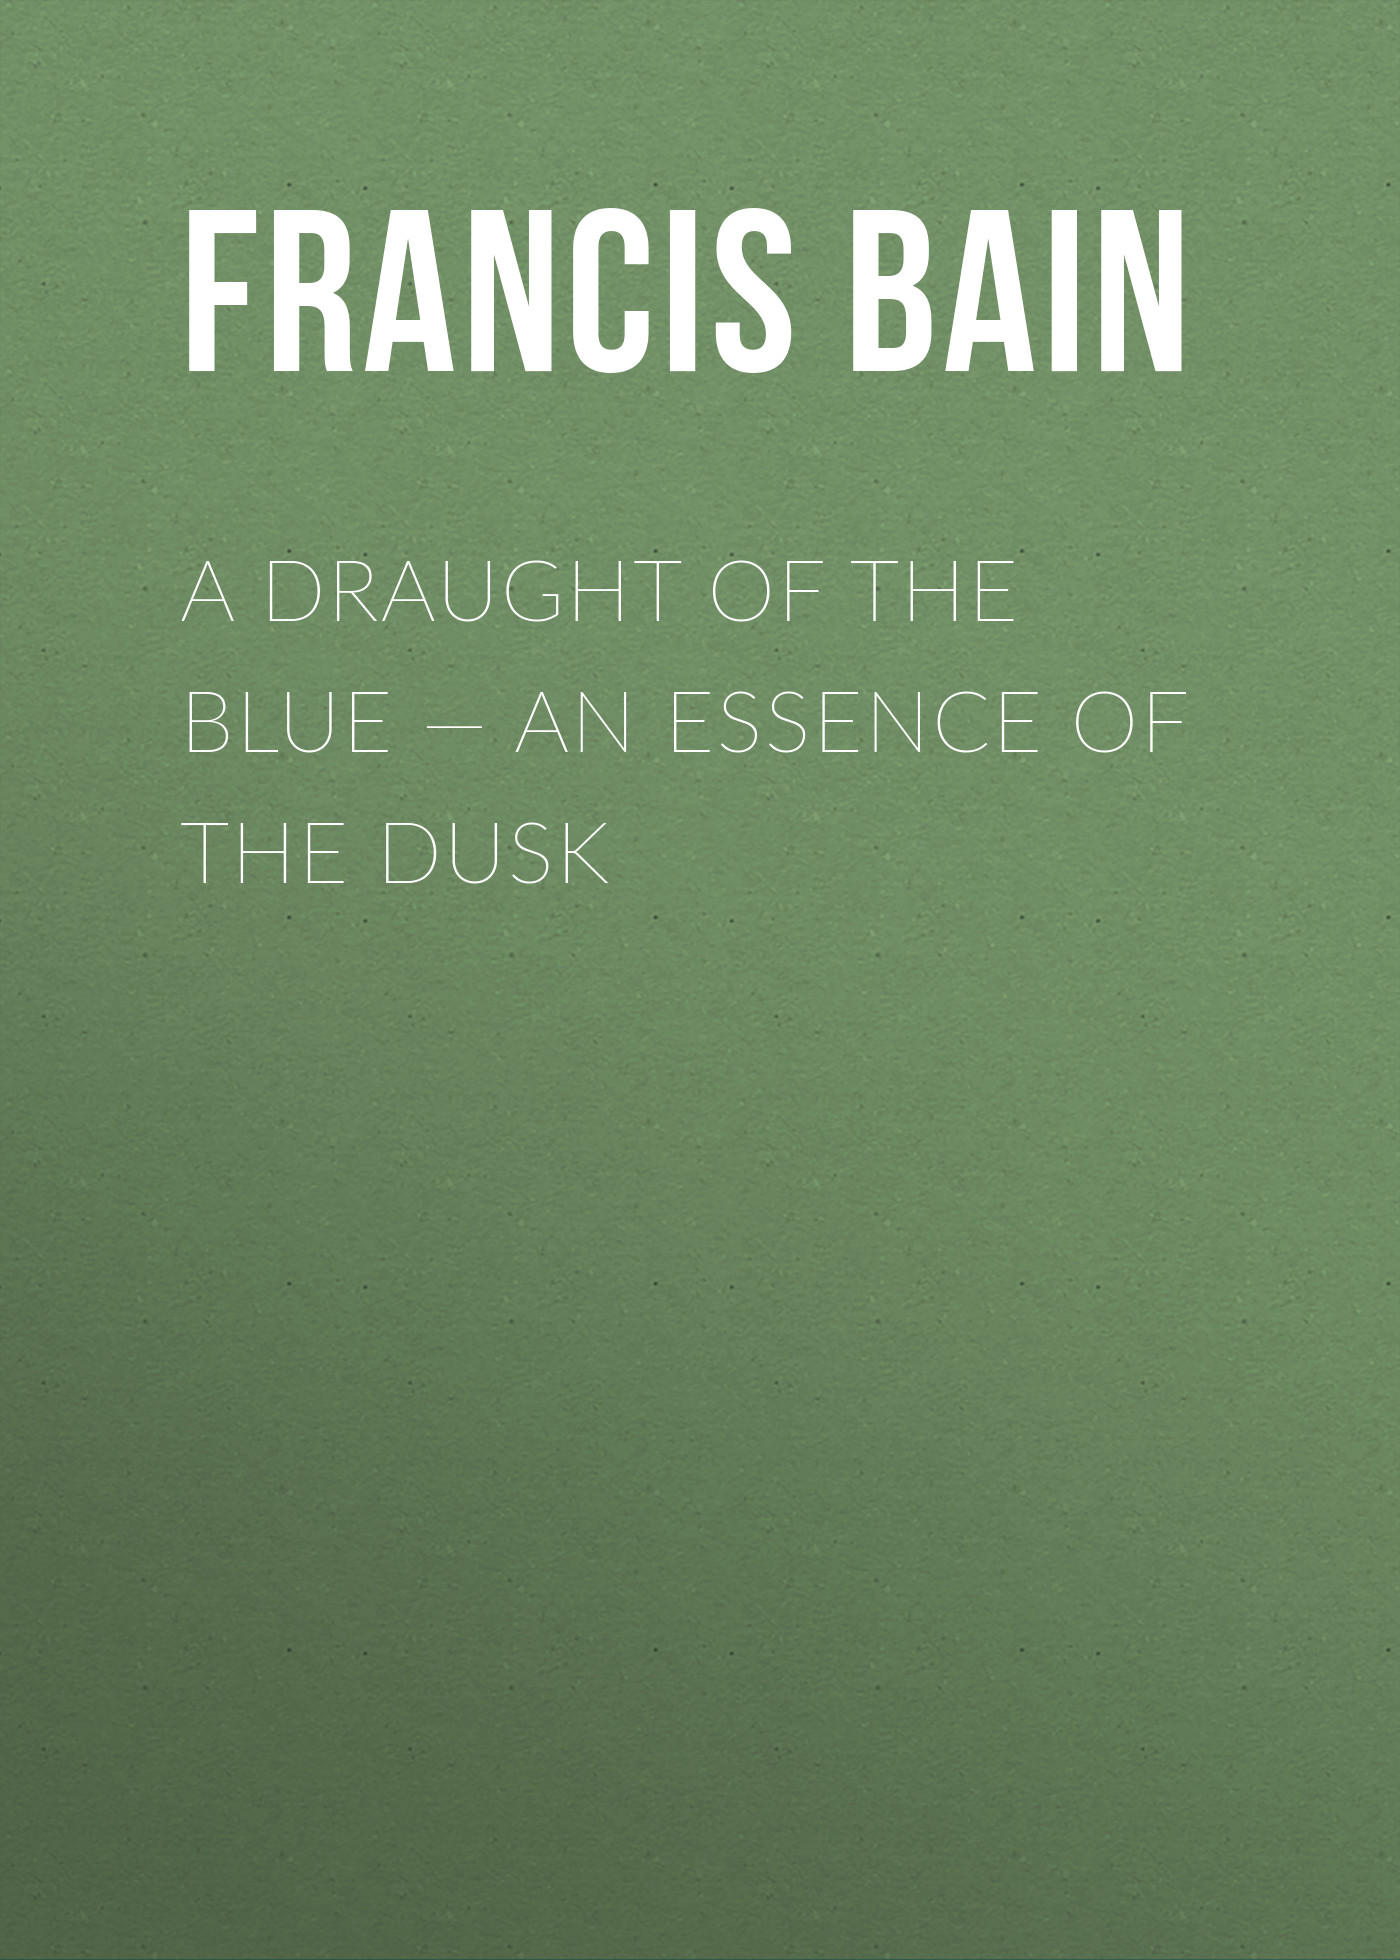 Bain Francis William A Draught of the Blue – An Essence of the Dusk h l sidney lear francis a selection from the spiritual letters of s francis de sales bishop and prince of geneva